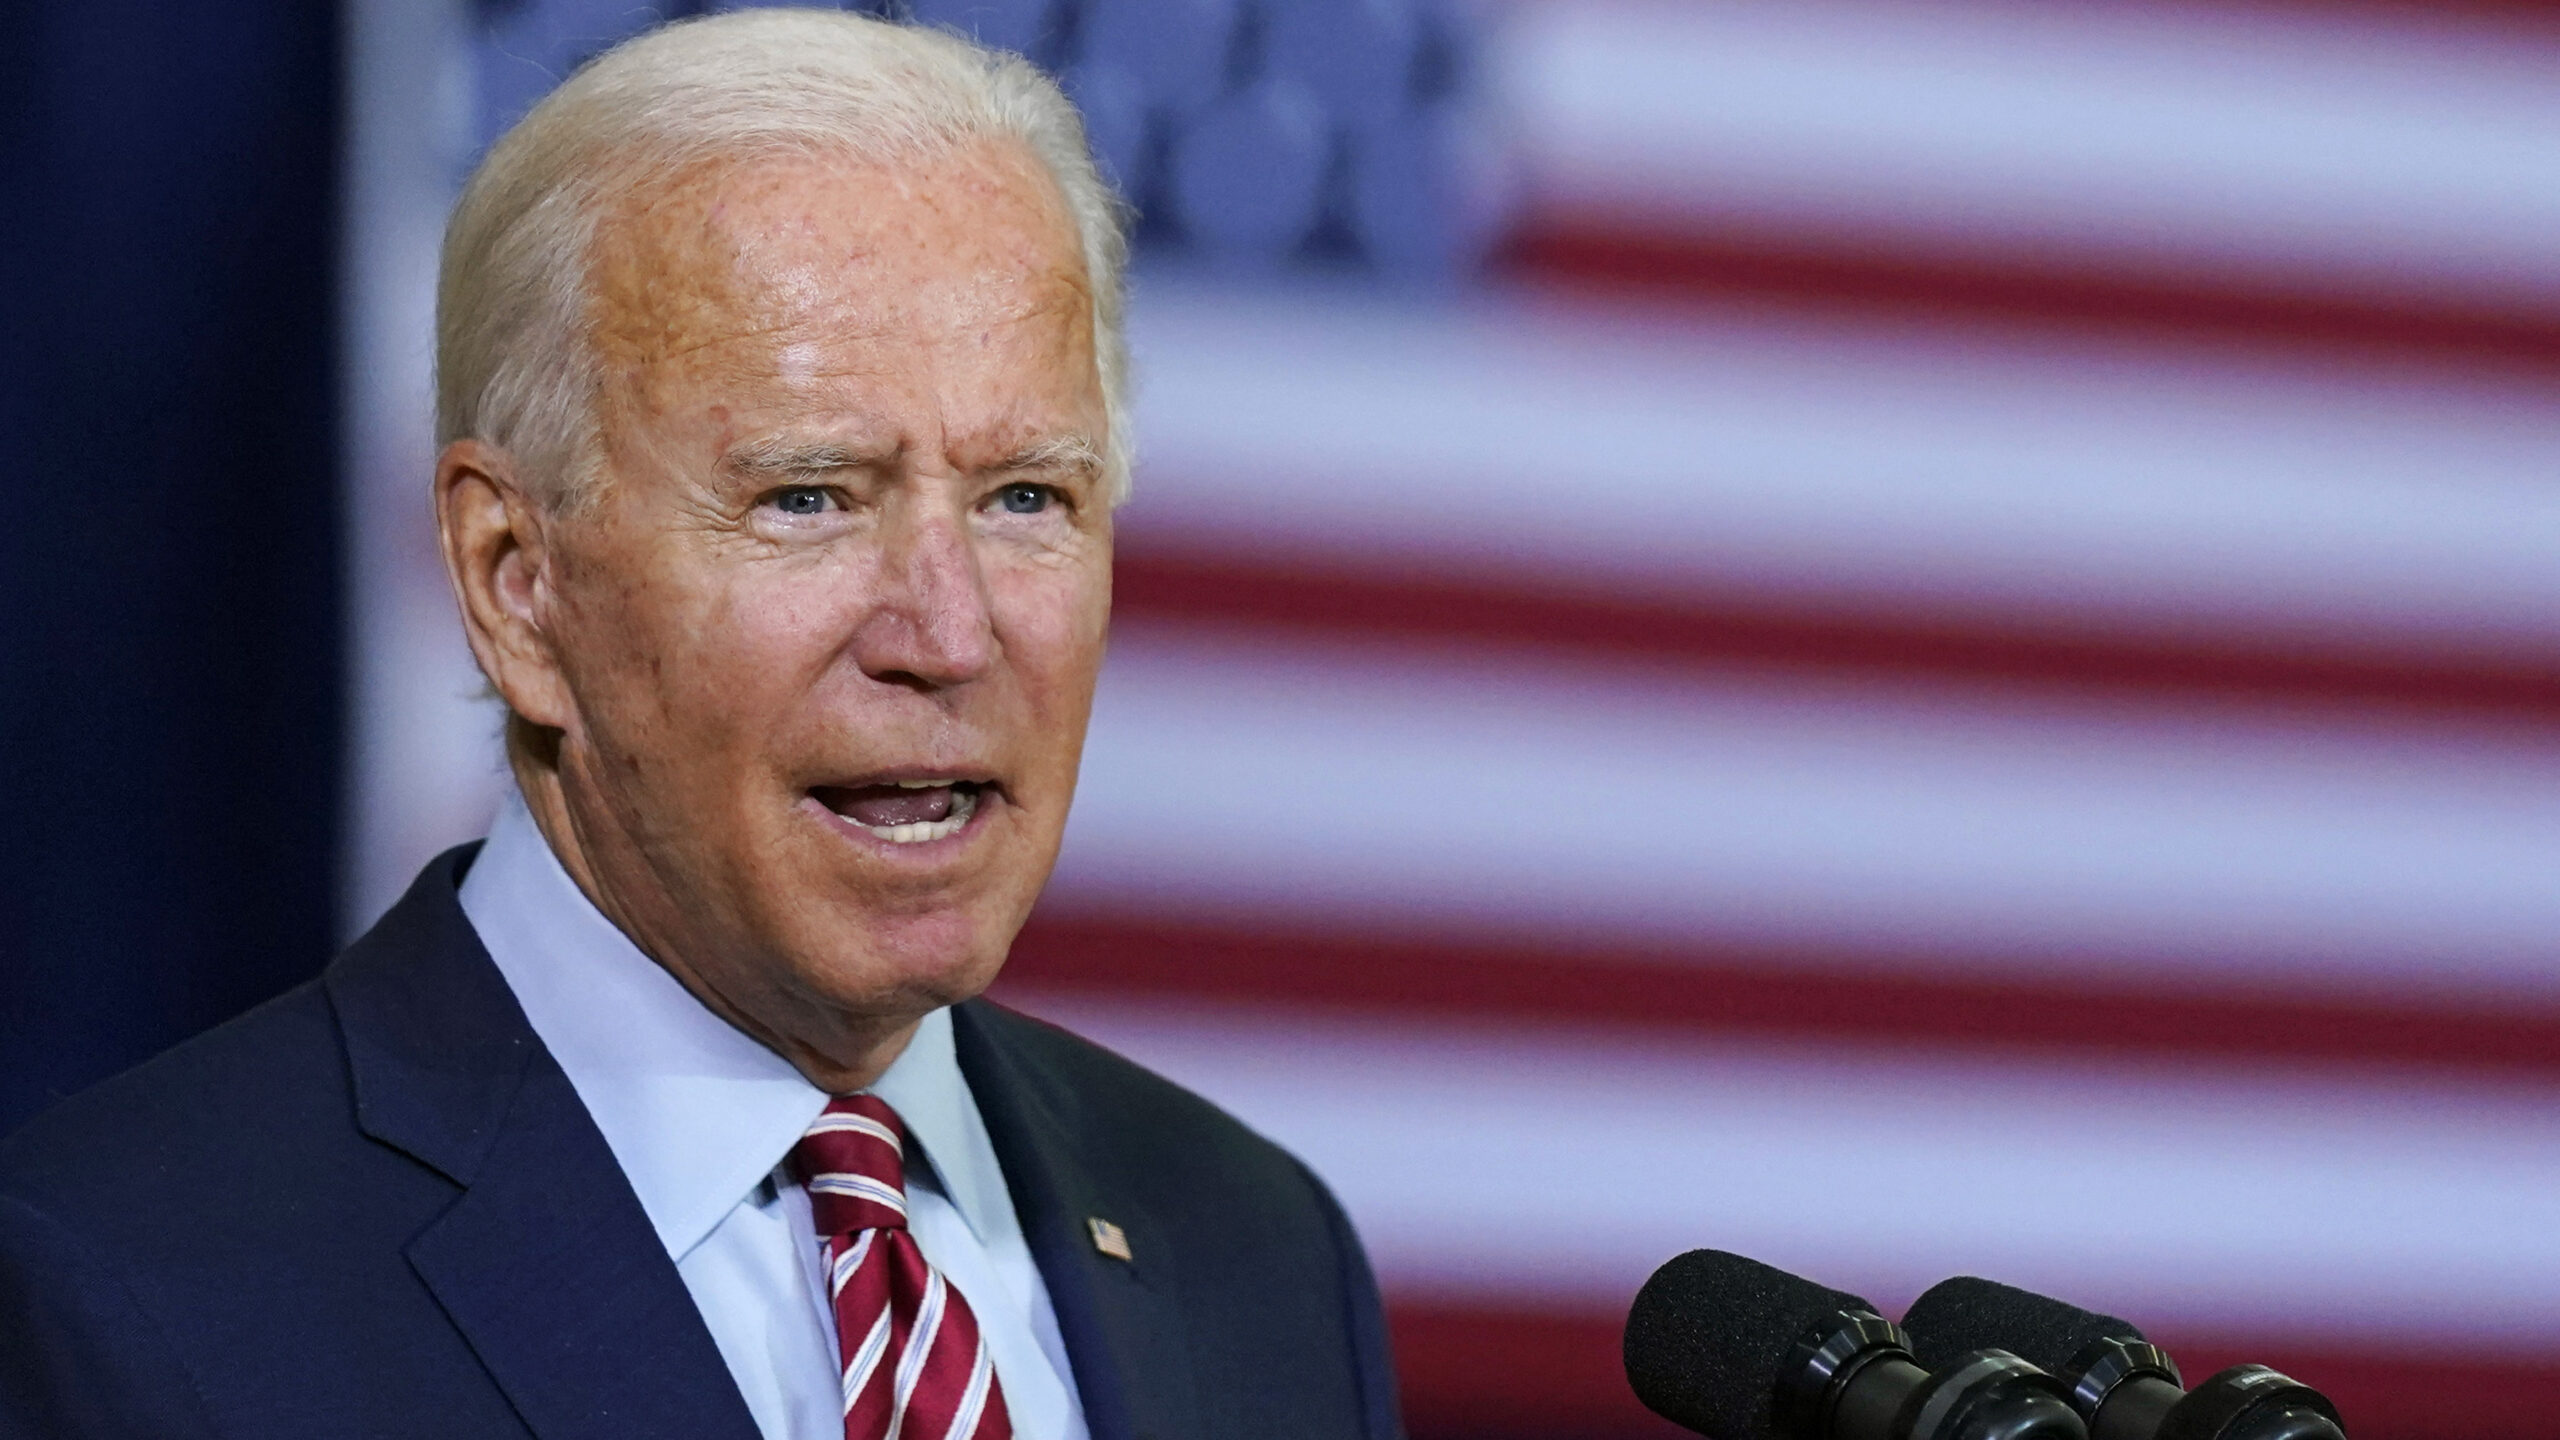 Biden refuses to say whether he would add seats to Supreme Court